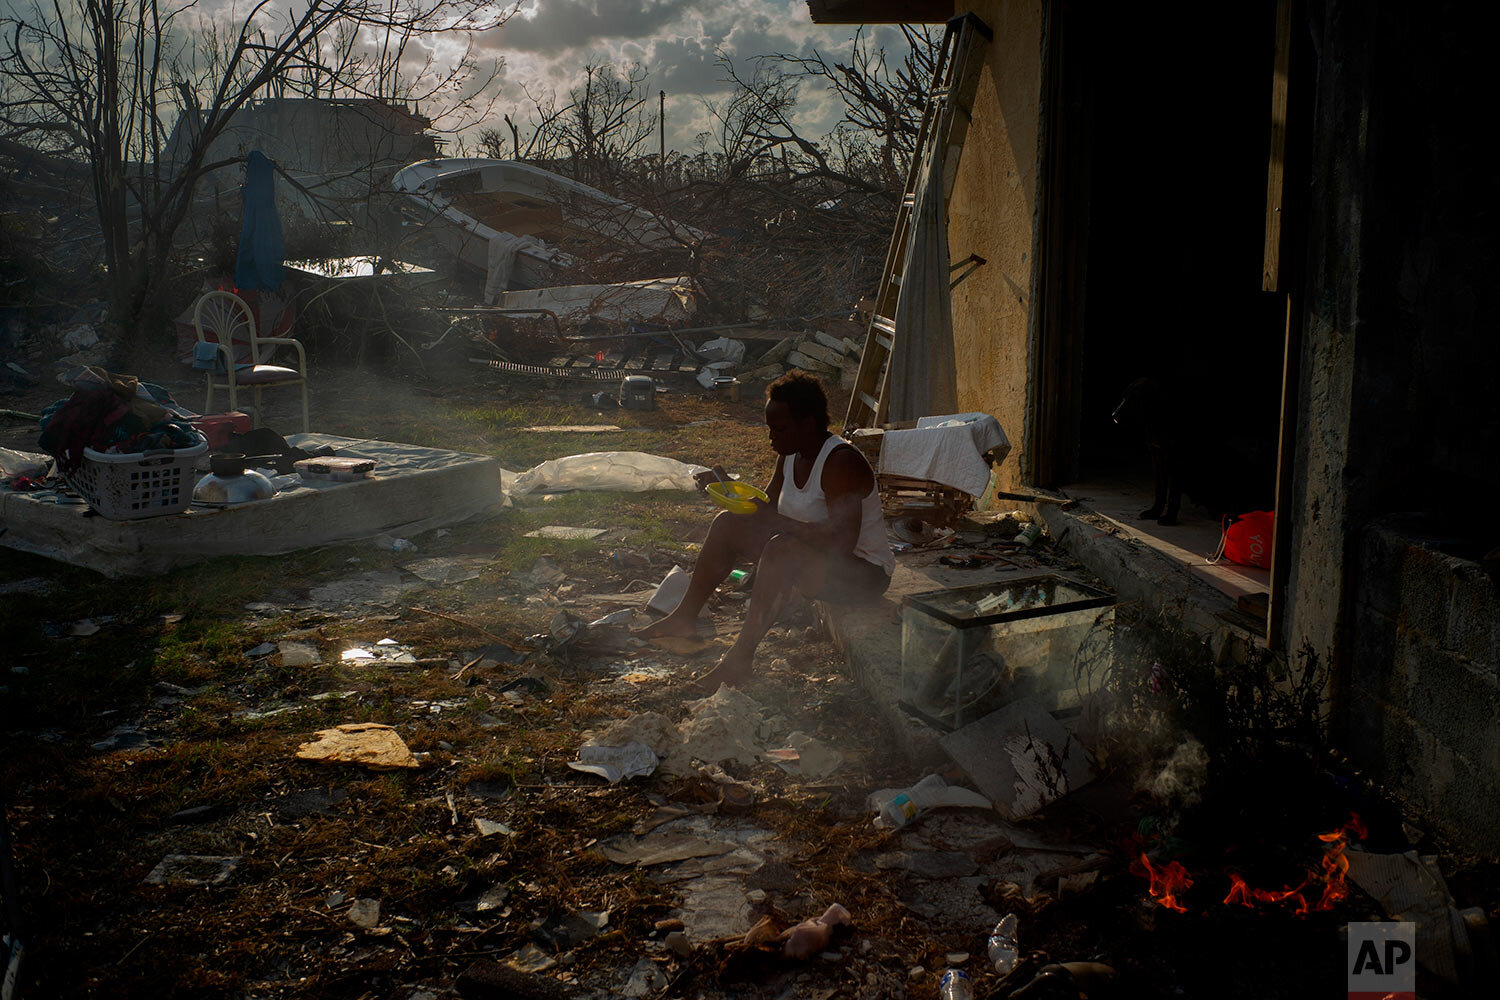 Tereha Davis, 45, eats a meal of rice as she sits among the remains of her shattered home, in the aftermath of Hurricane Dorian in McLean's Town, Grand Bahama, Bahamas, Wednesday Sept. 11, 2019. She and others said they had not seen any government officials and have only received food and water from some nonprofit organizations. (AP Photo/Ramon Espinosa)